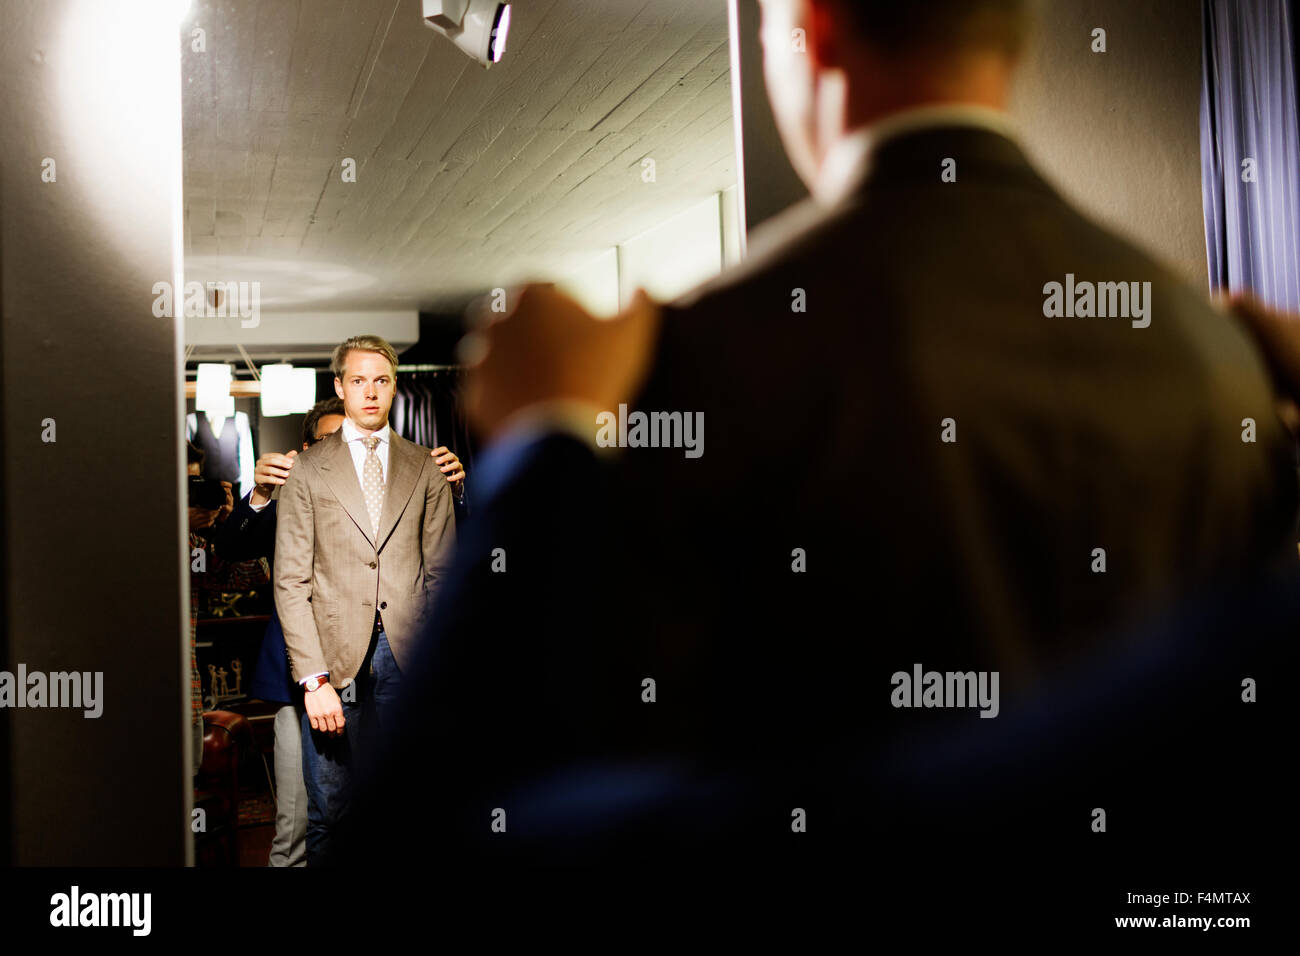 Sales clerk analyzing customer's suit in front of mirror at clothing store - Stock Image